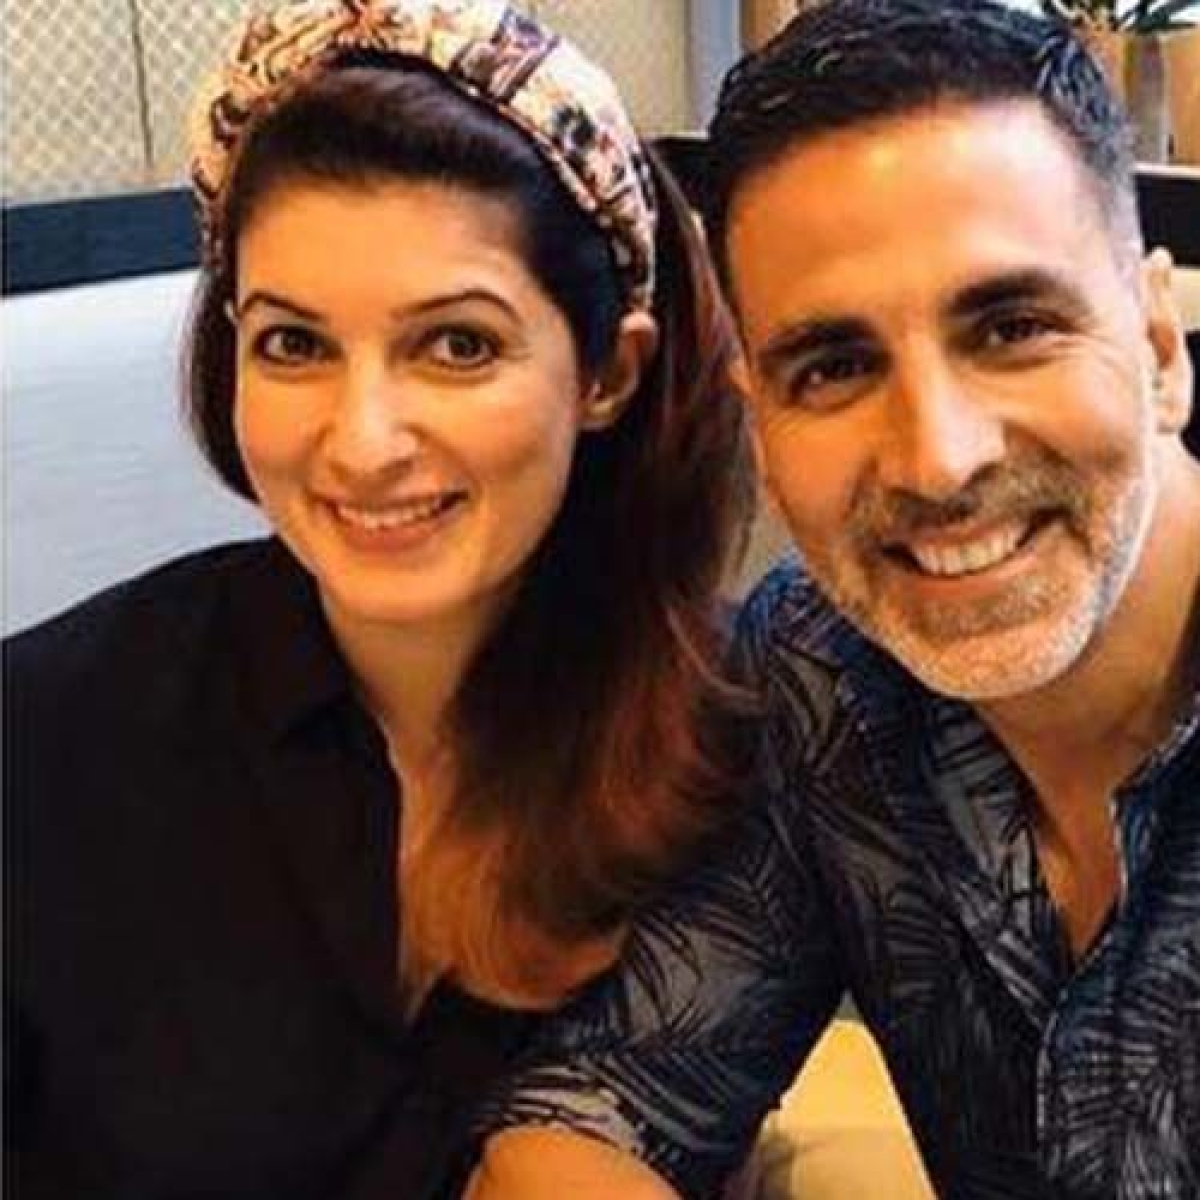 Akshay Kumar tests negative for COVID-19, wife Twinkle Khanna says 'good to have him back'